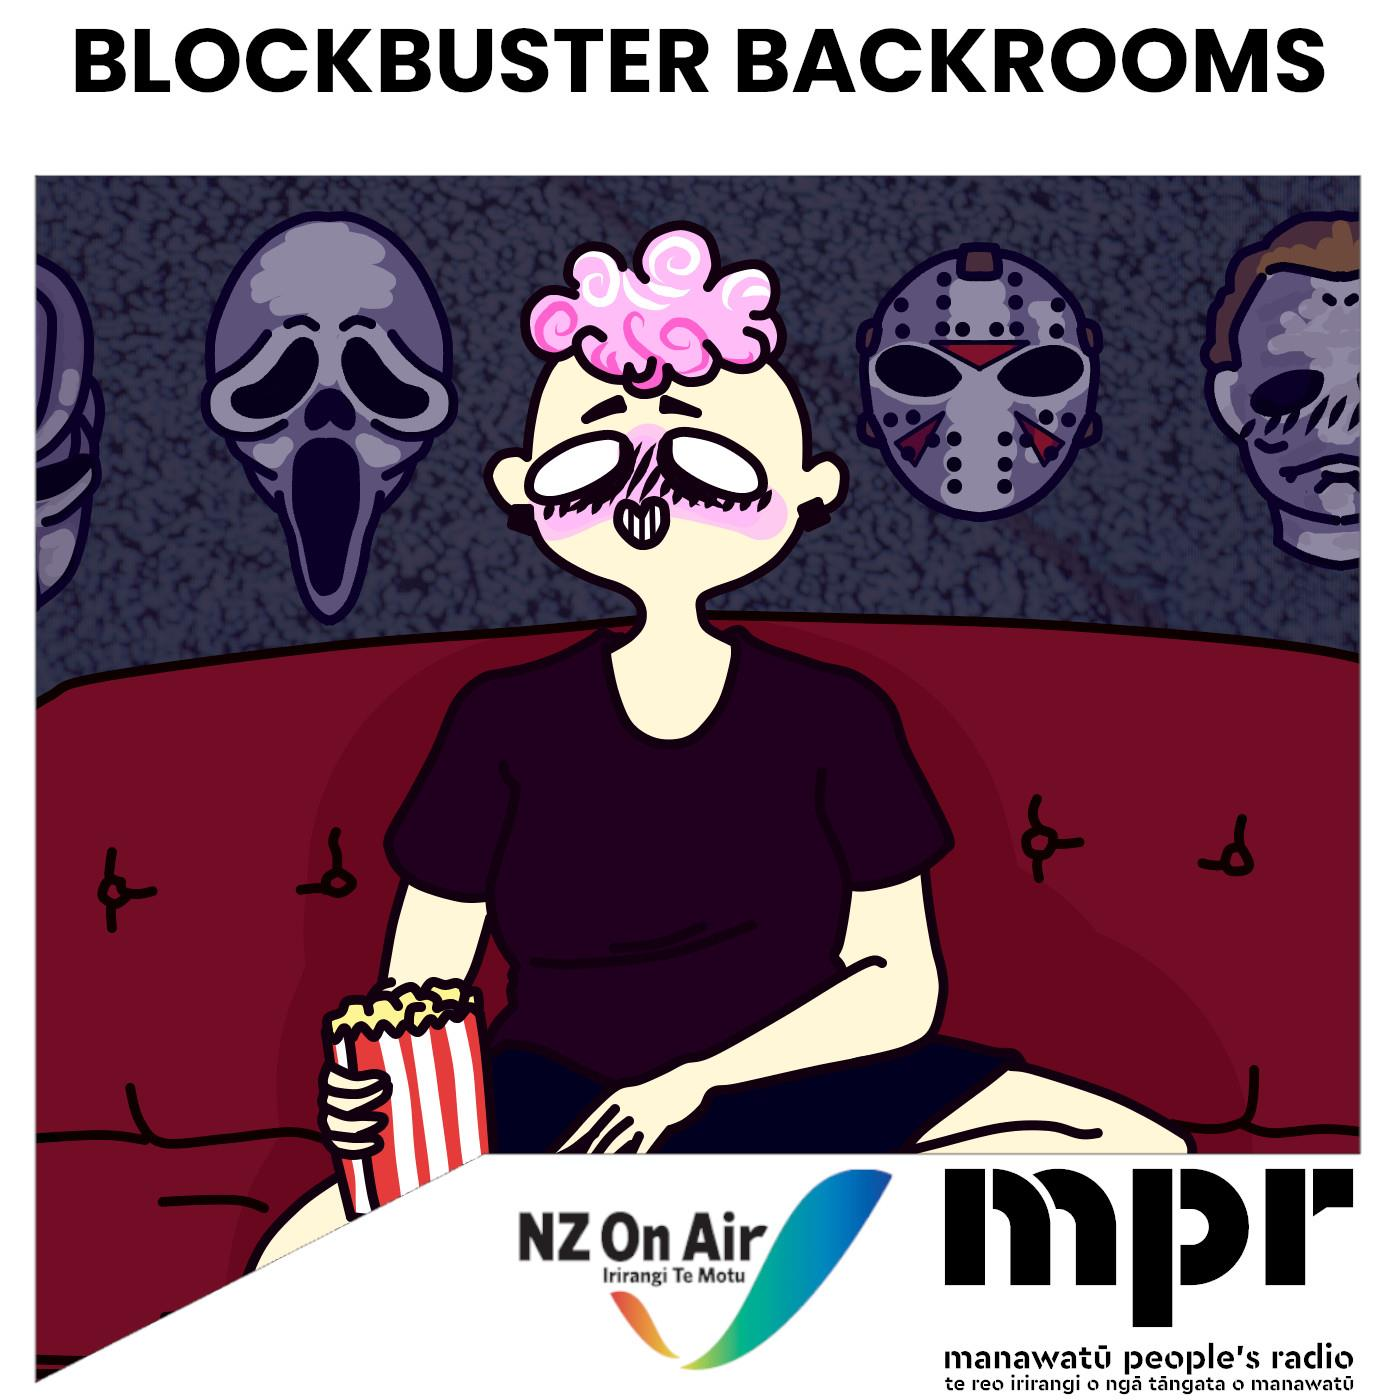 Blockbuster Backrooms